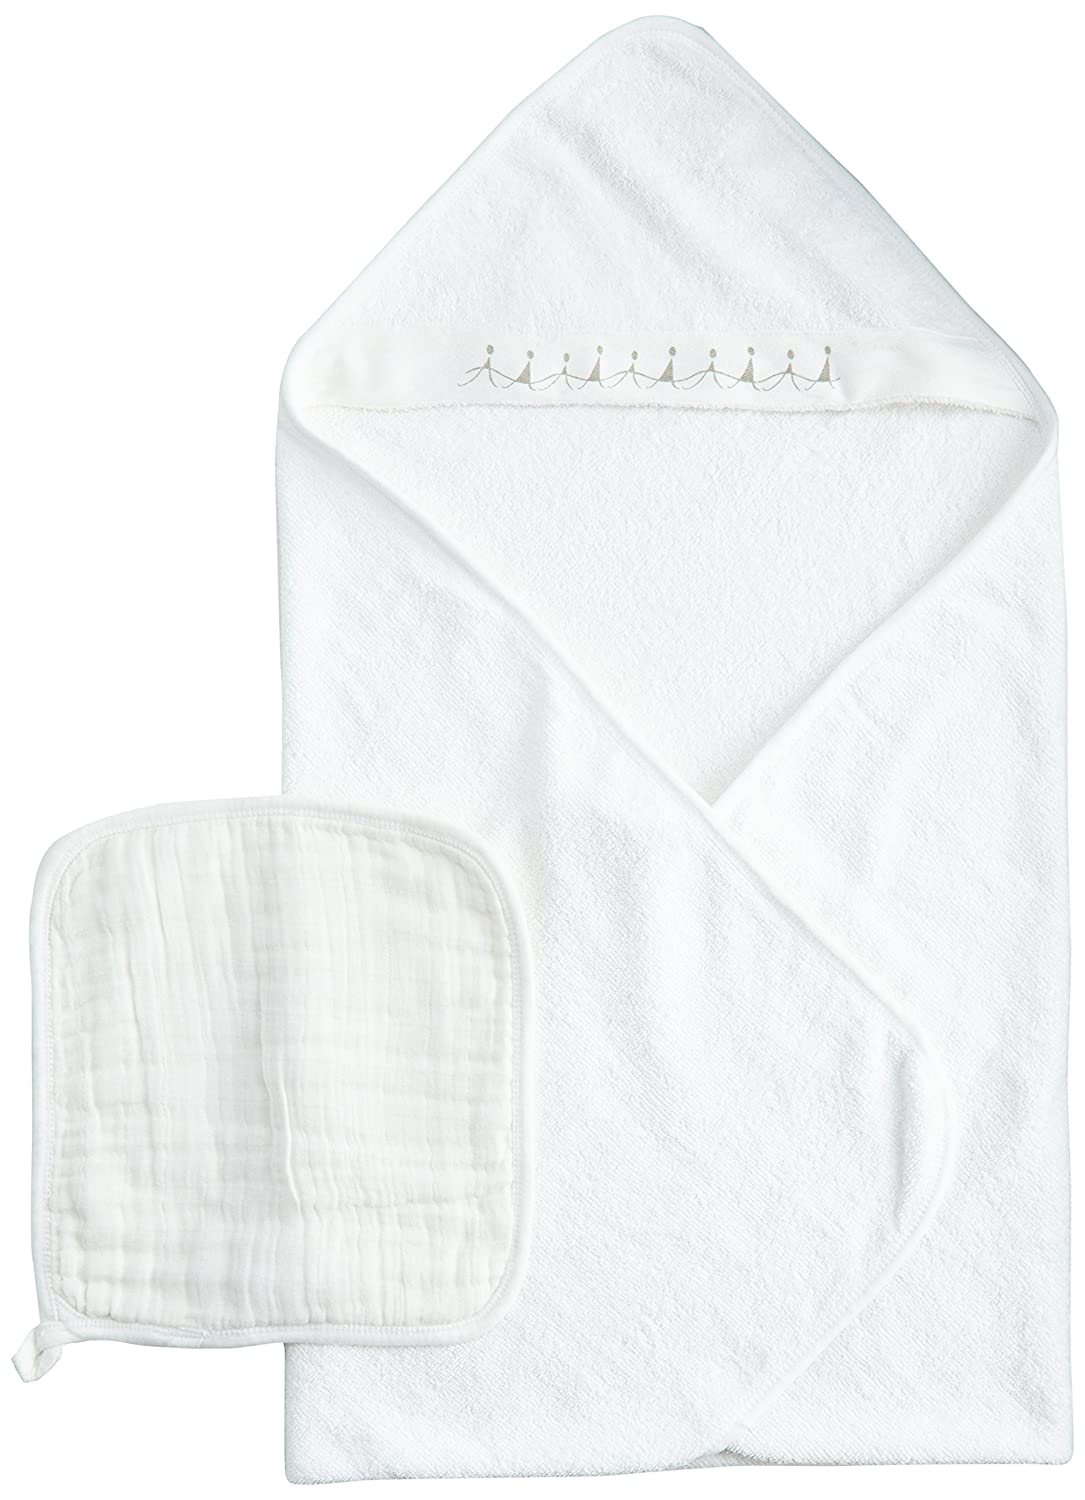 aden + anais 100-Percent Cotton Muslin Hooded Towel and Washcloth, Water Baby, White, 1 Pack 3020